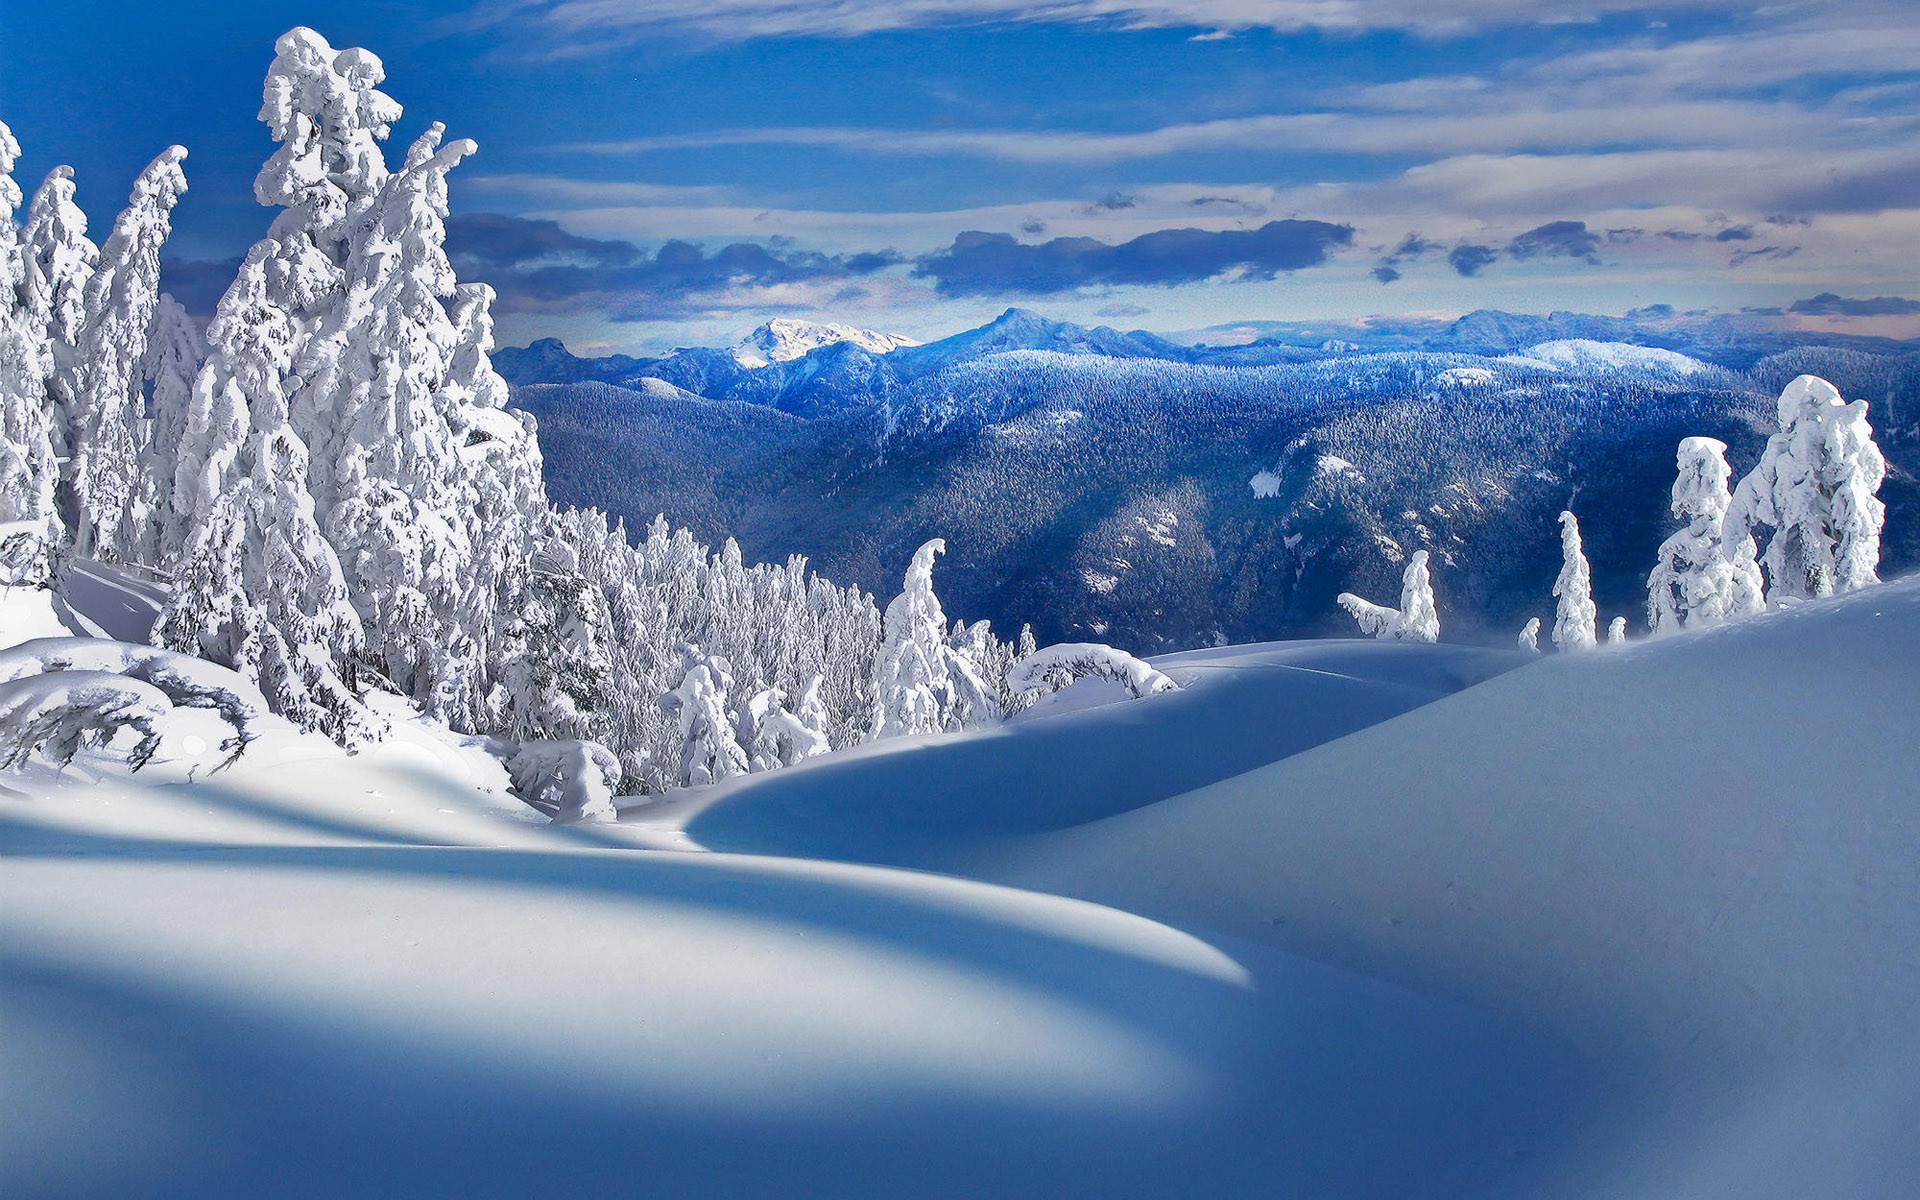 Free Computer Screensavers And Wallpapers Nature Winter photos of Free .